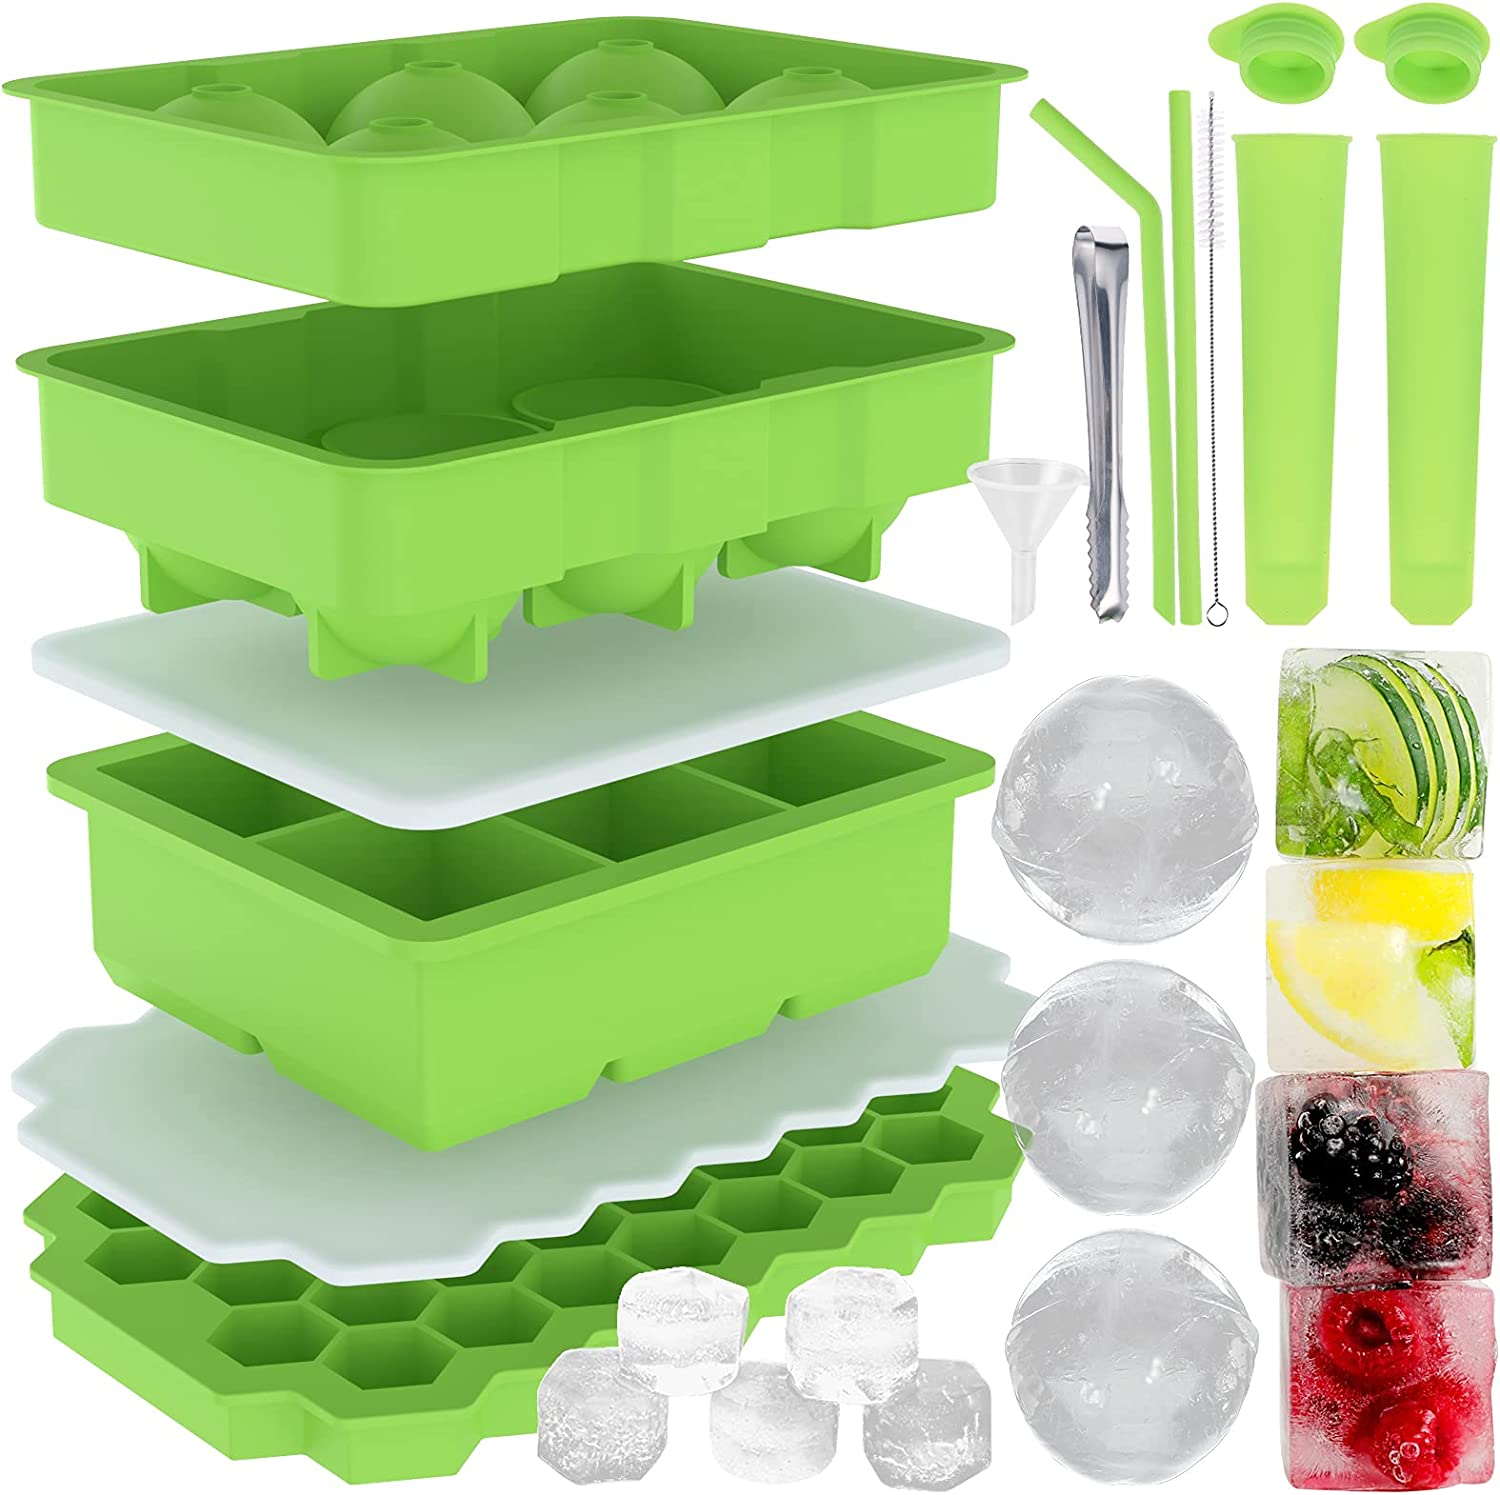 Cieex Ice Cube Trays Silicone Molds with San Diego Mall Removeable Lids Max 66% OFF